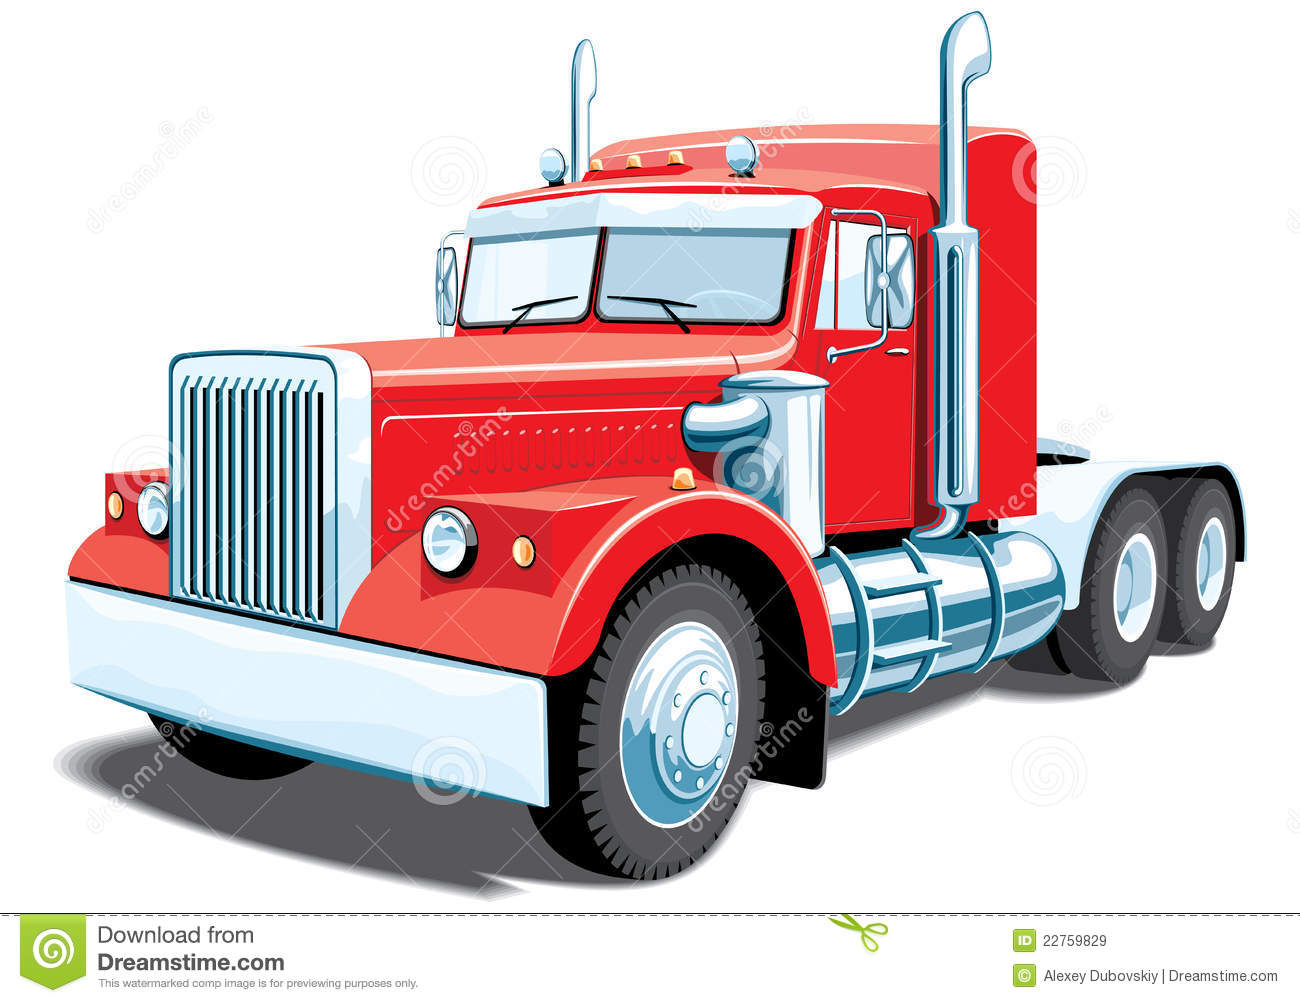 Red Semi Truck Clipart.